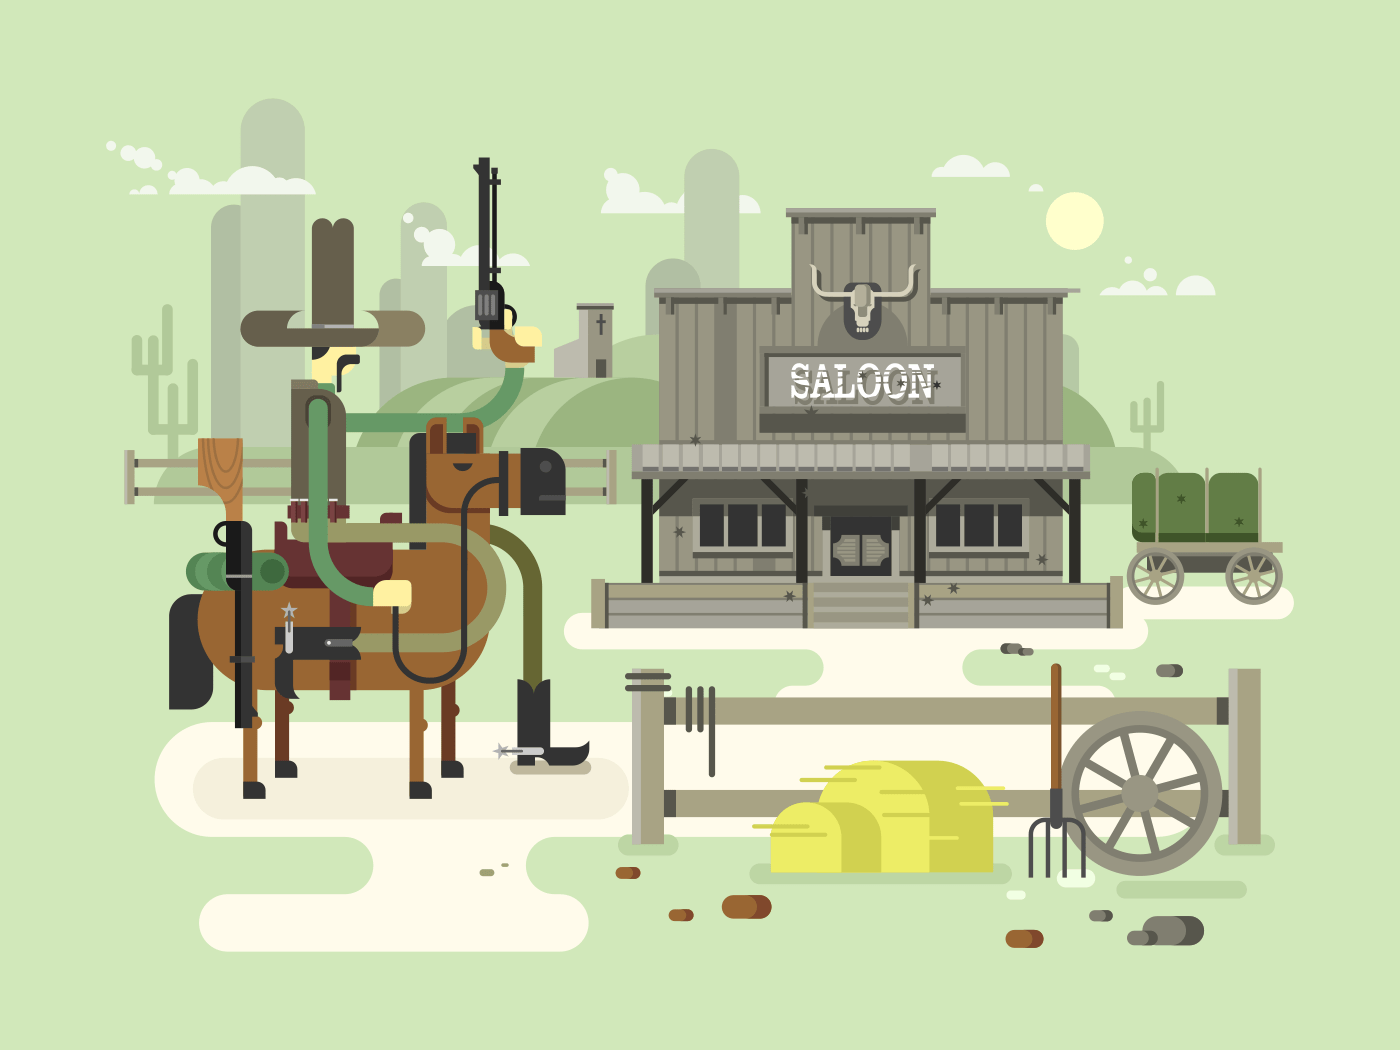 Wild west saloon flat vector illustration